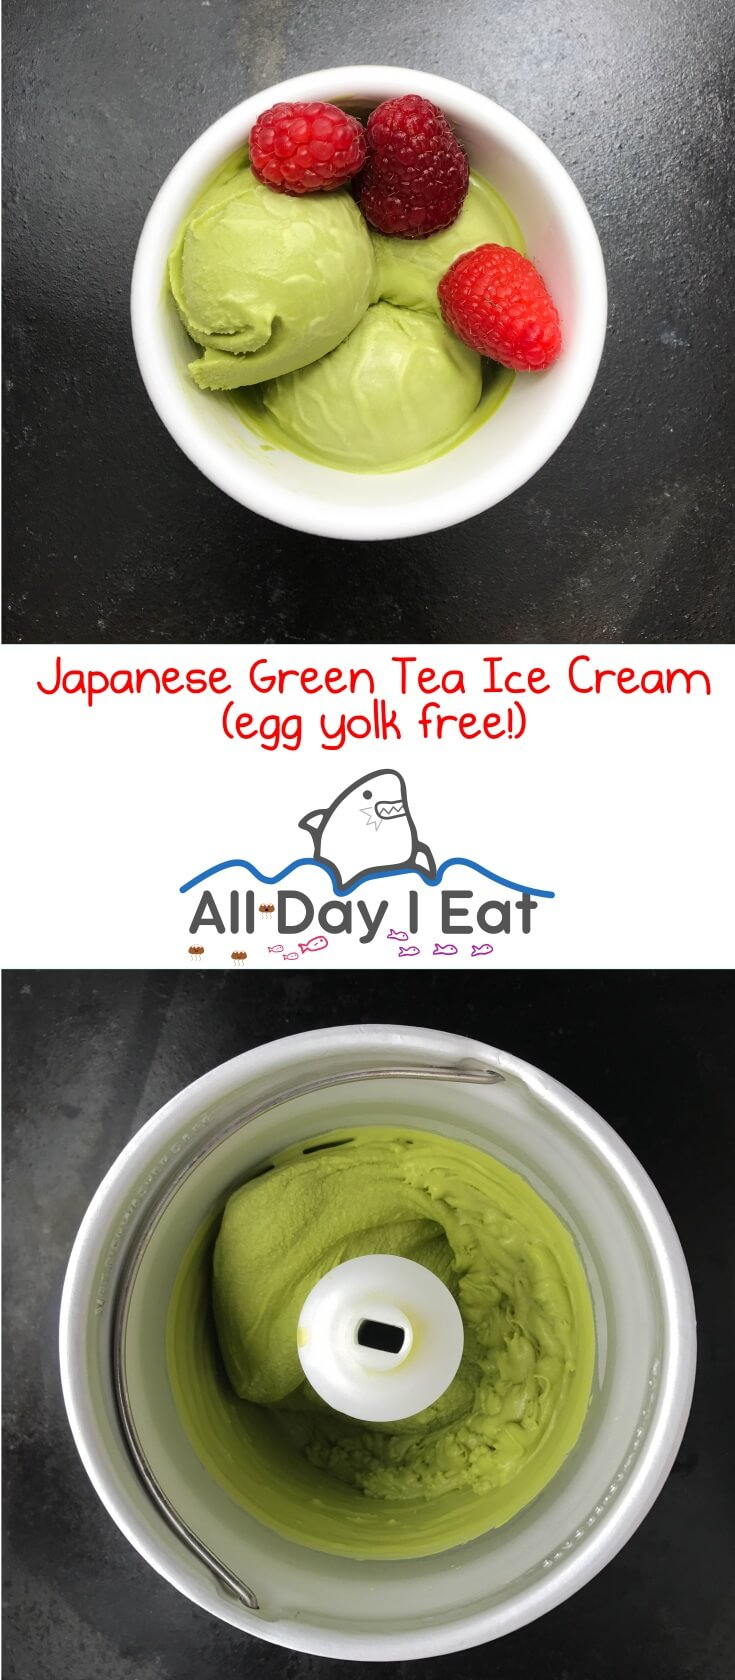 Japanese Green Tea Ice Cream (egg yolk free!). A tasty and reduced guilt way to increase your green tea consumption and satisfy your sweet tooth! | www.alldayieat.com